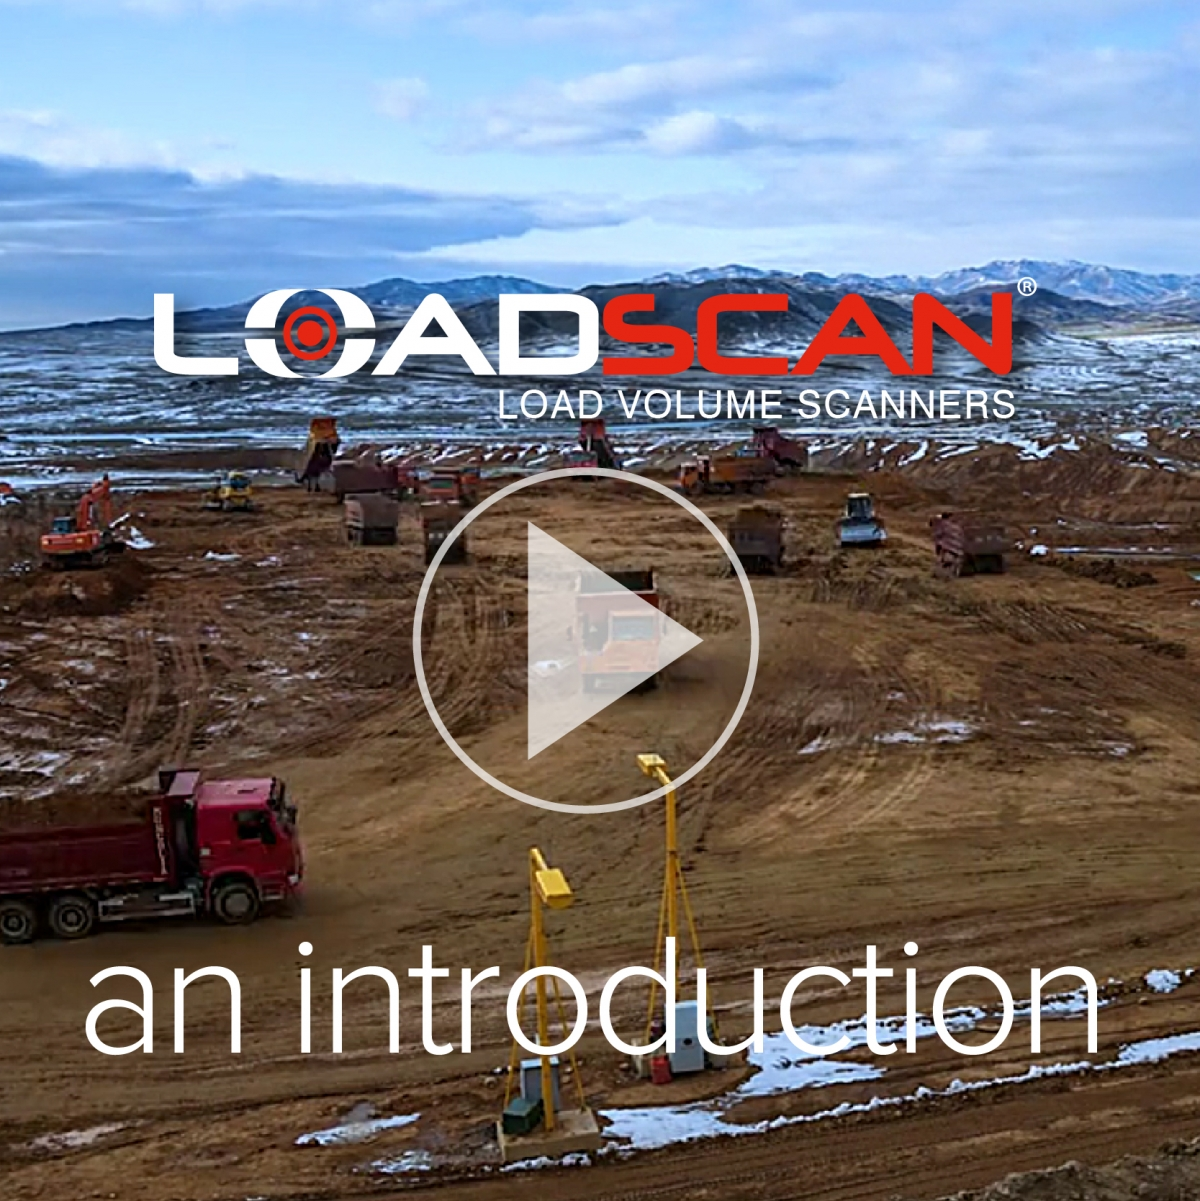 Play our Loadscan intro video